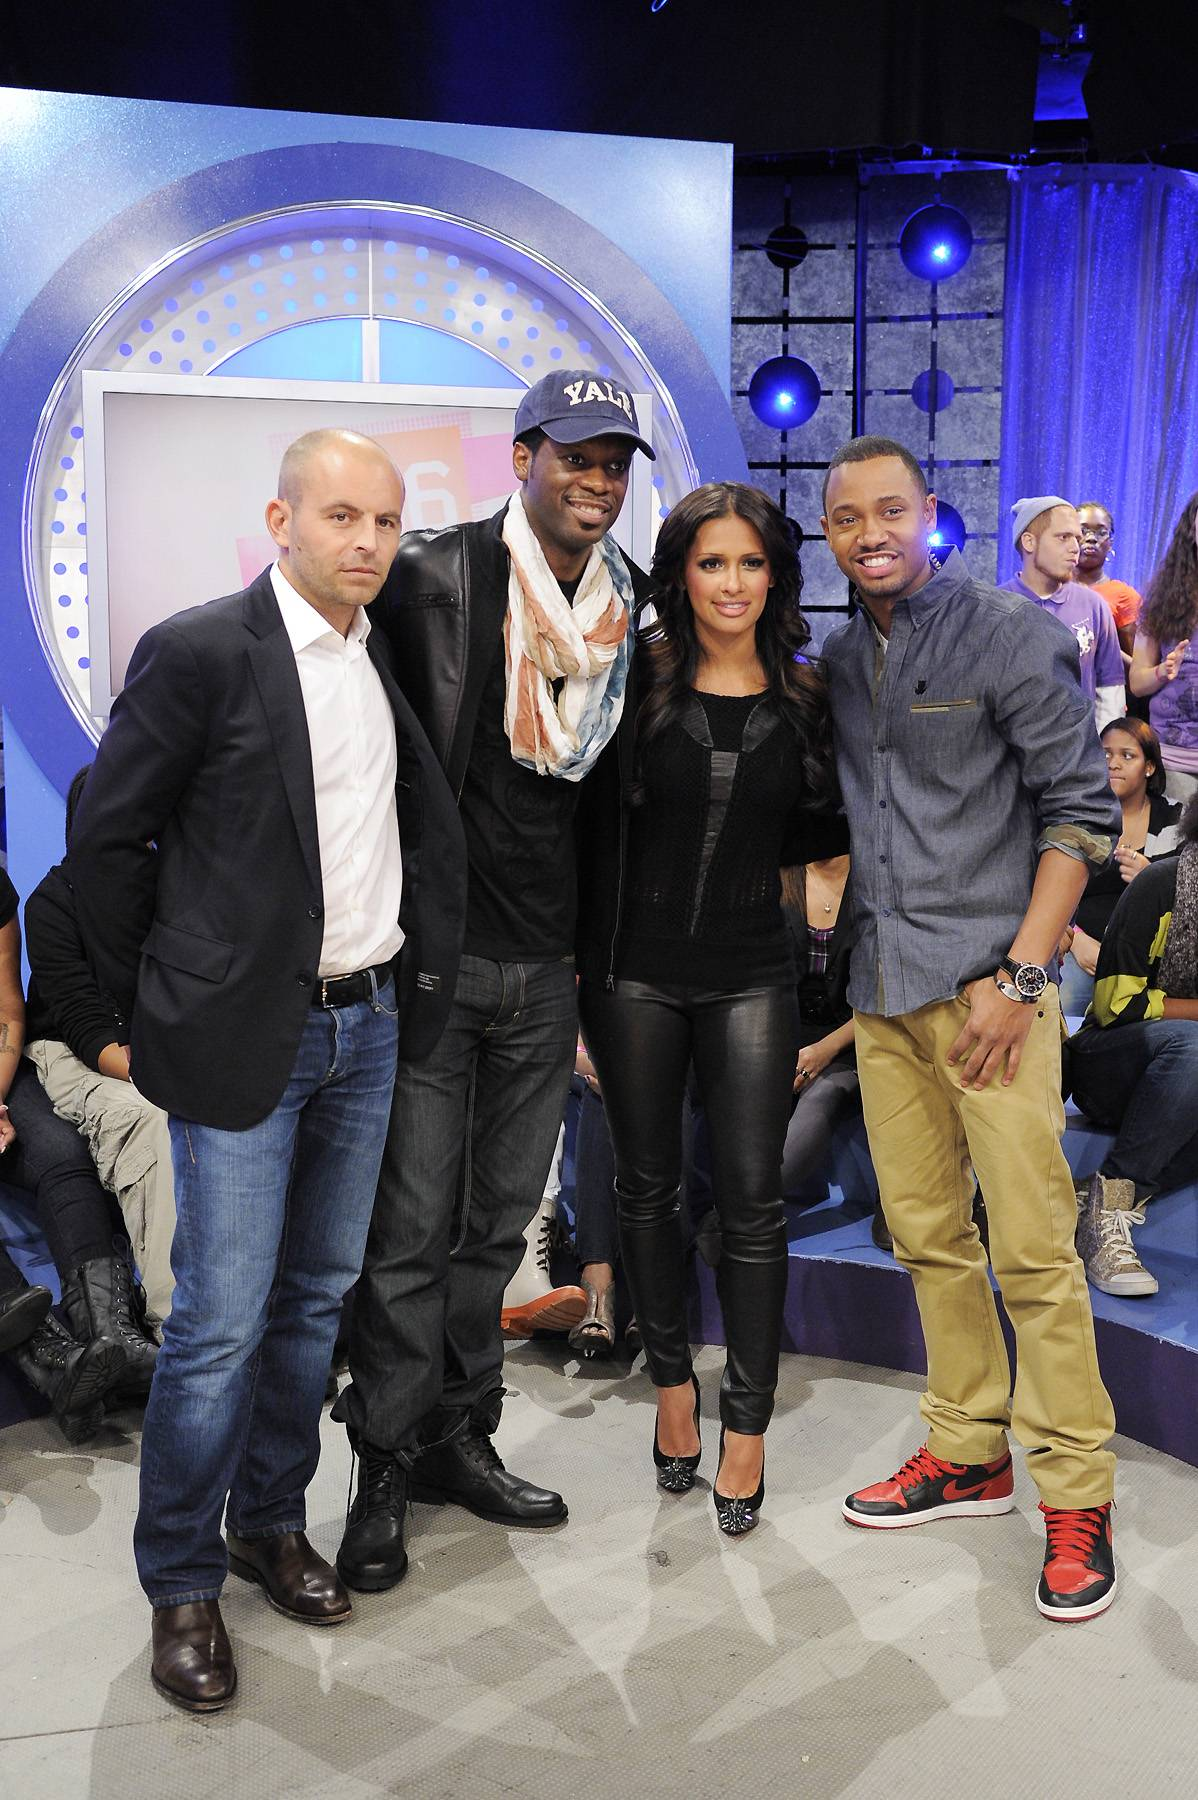 For a Cause - David Belle, Pras, Rocsi Diaz and Terrence J at 106 & Park, January 12, 2012. (Photo: John Ricard / BET)